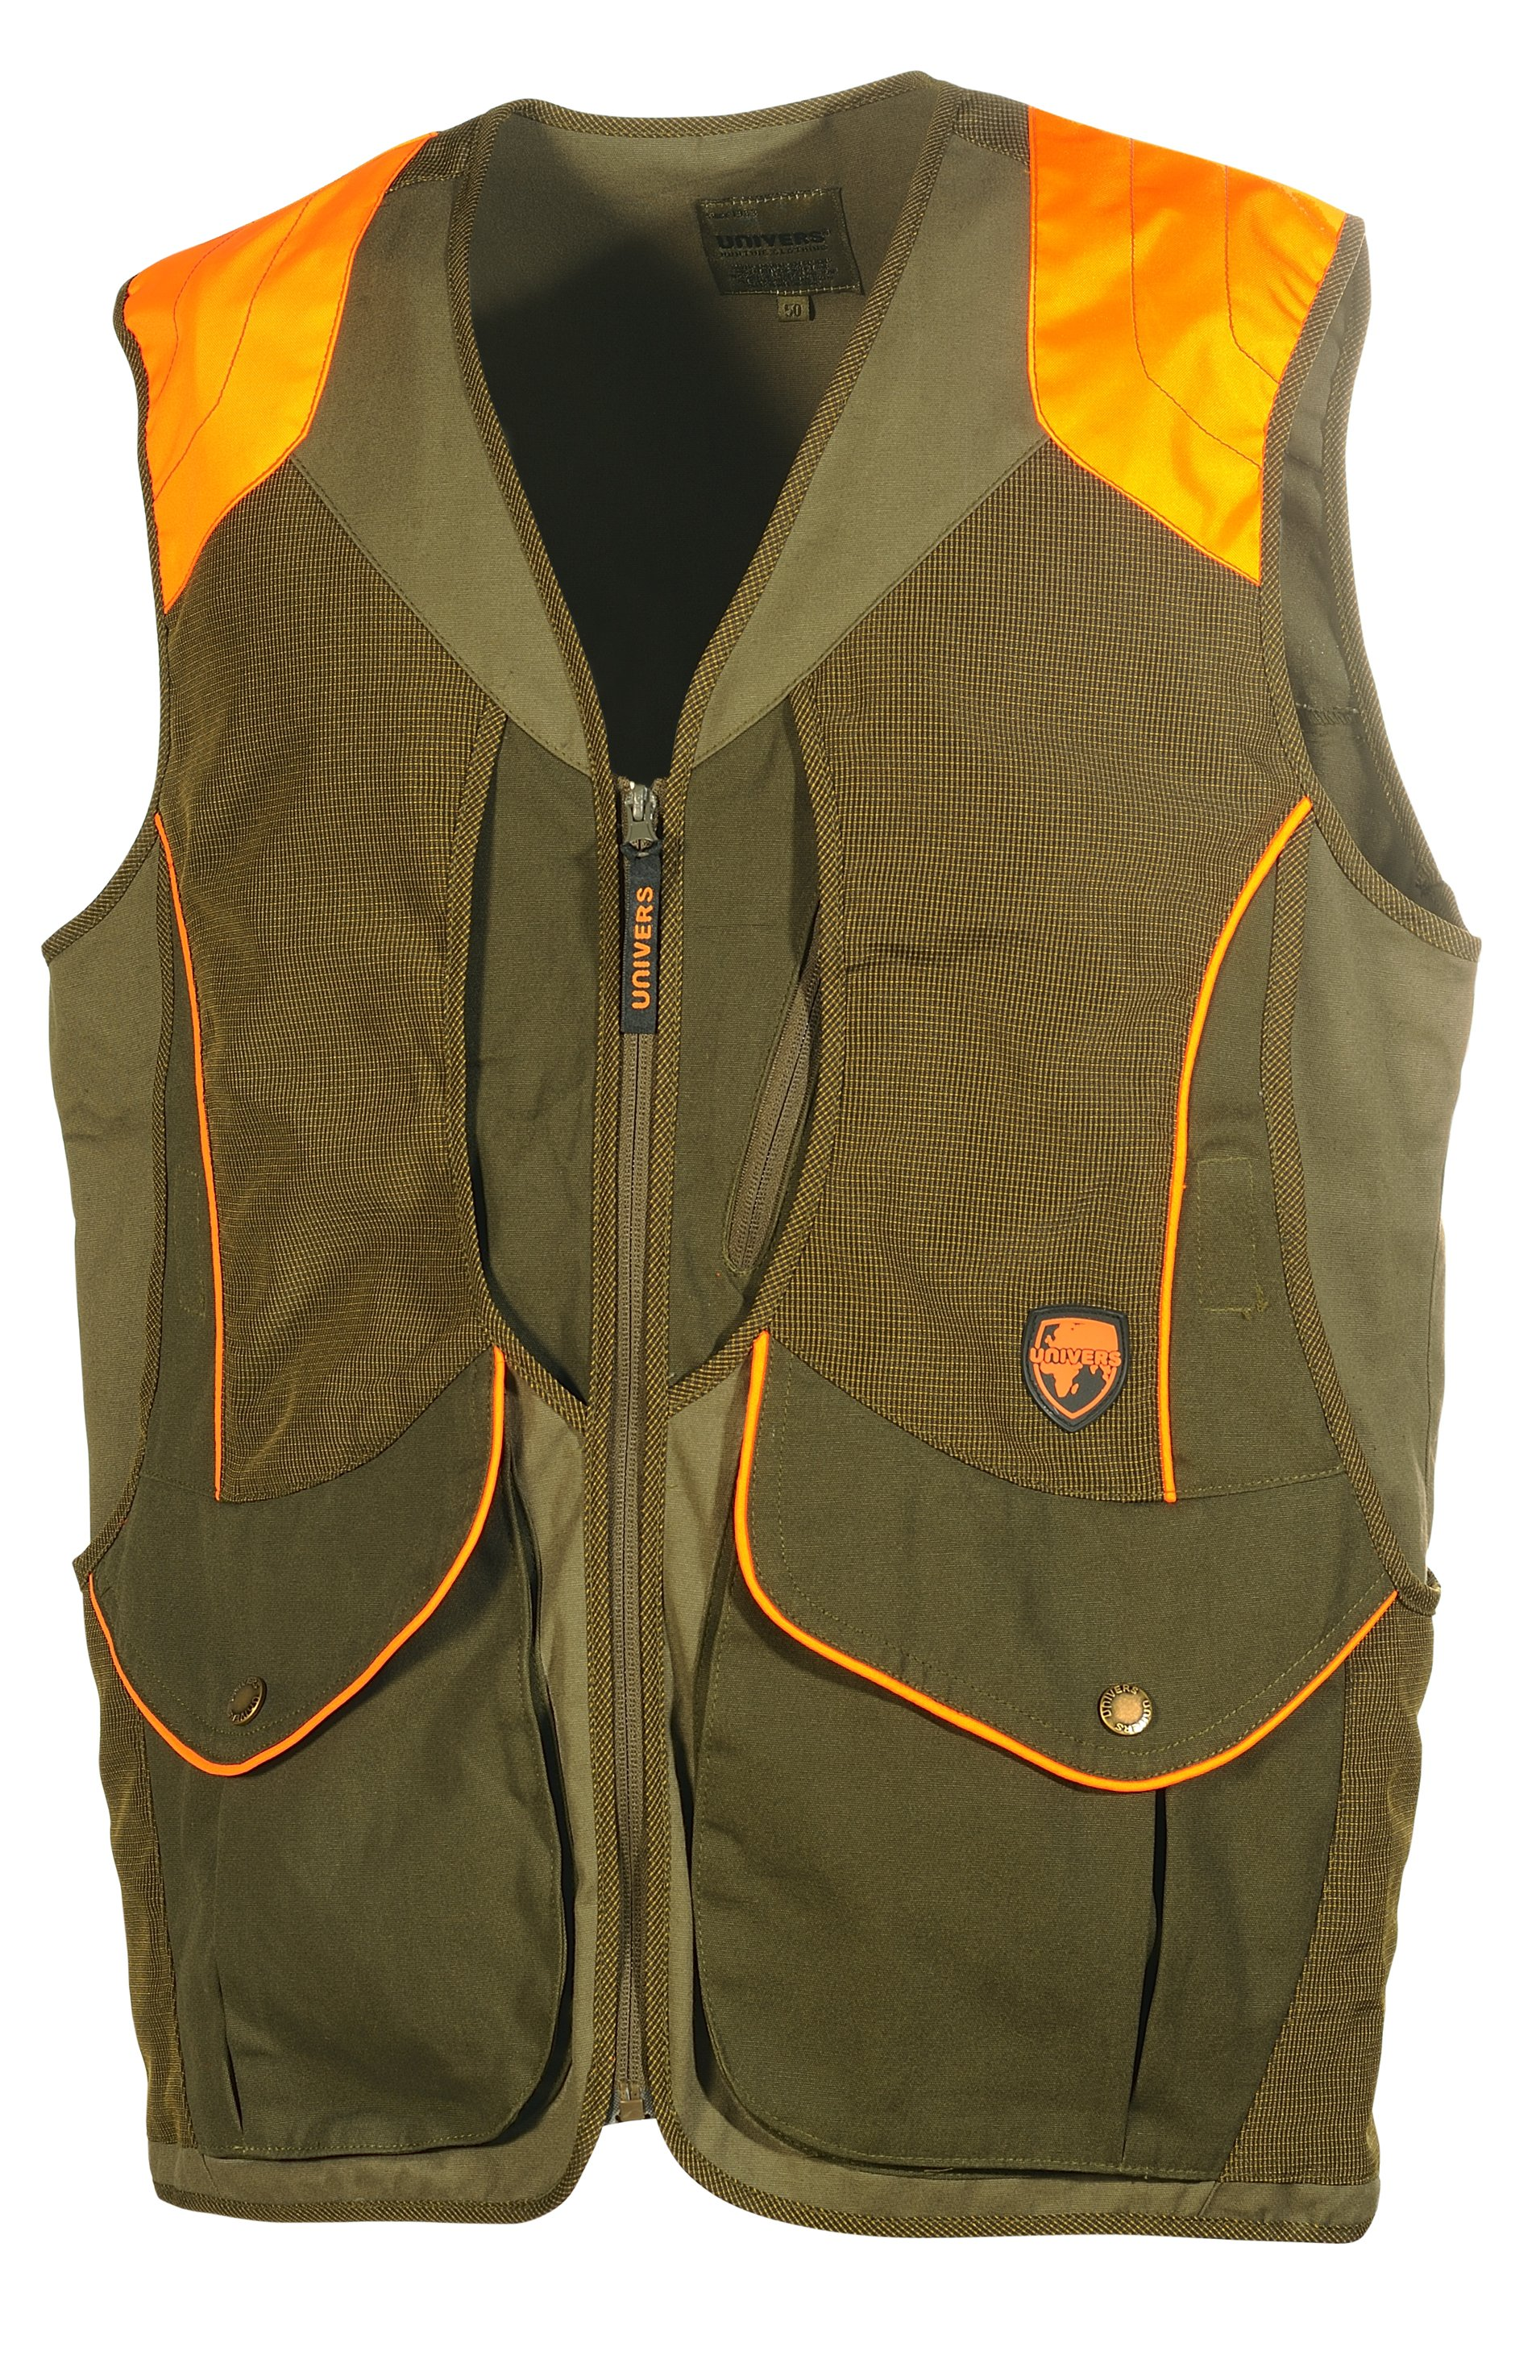 Univers Hunting Vests 93002/392